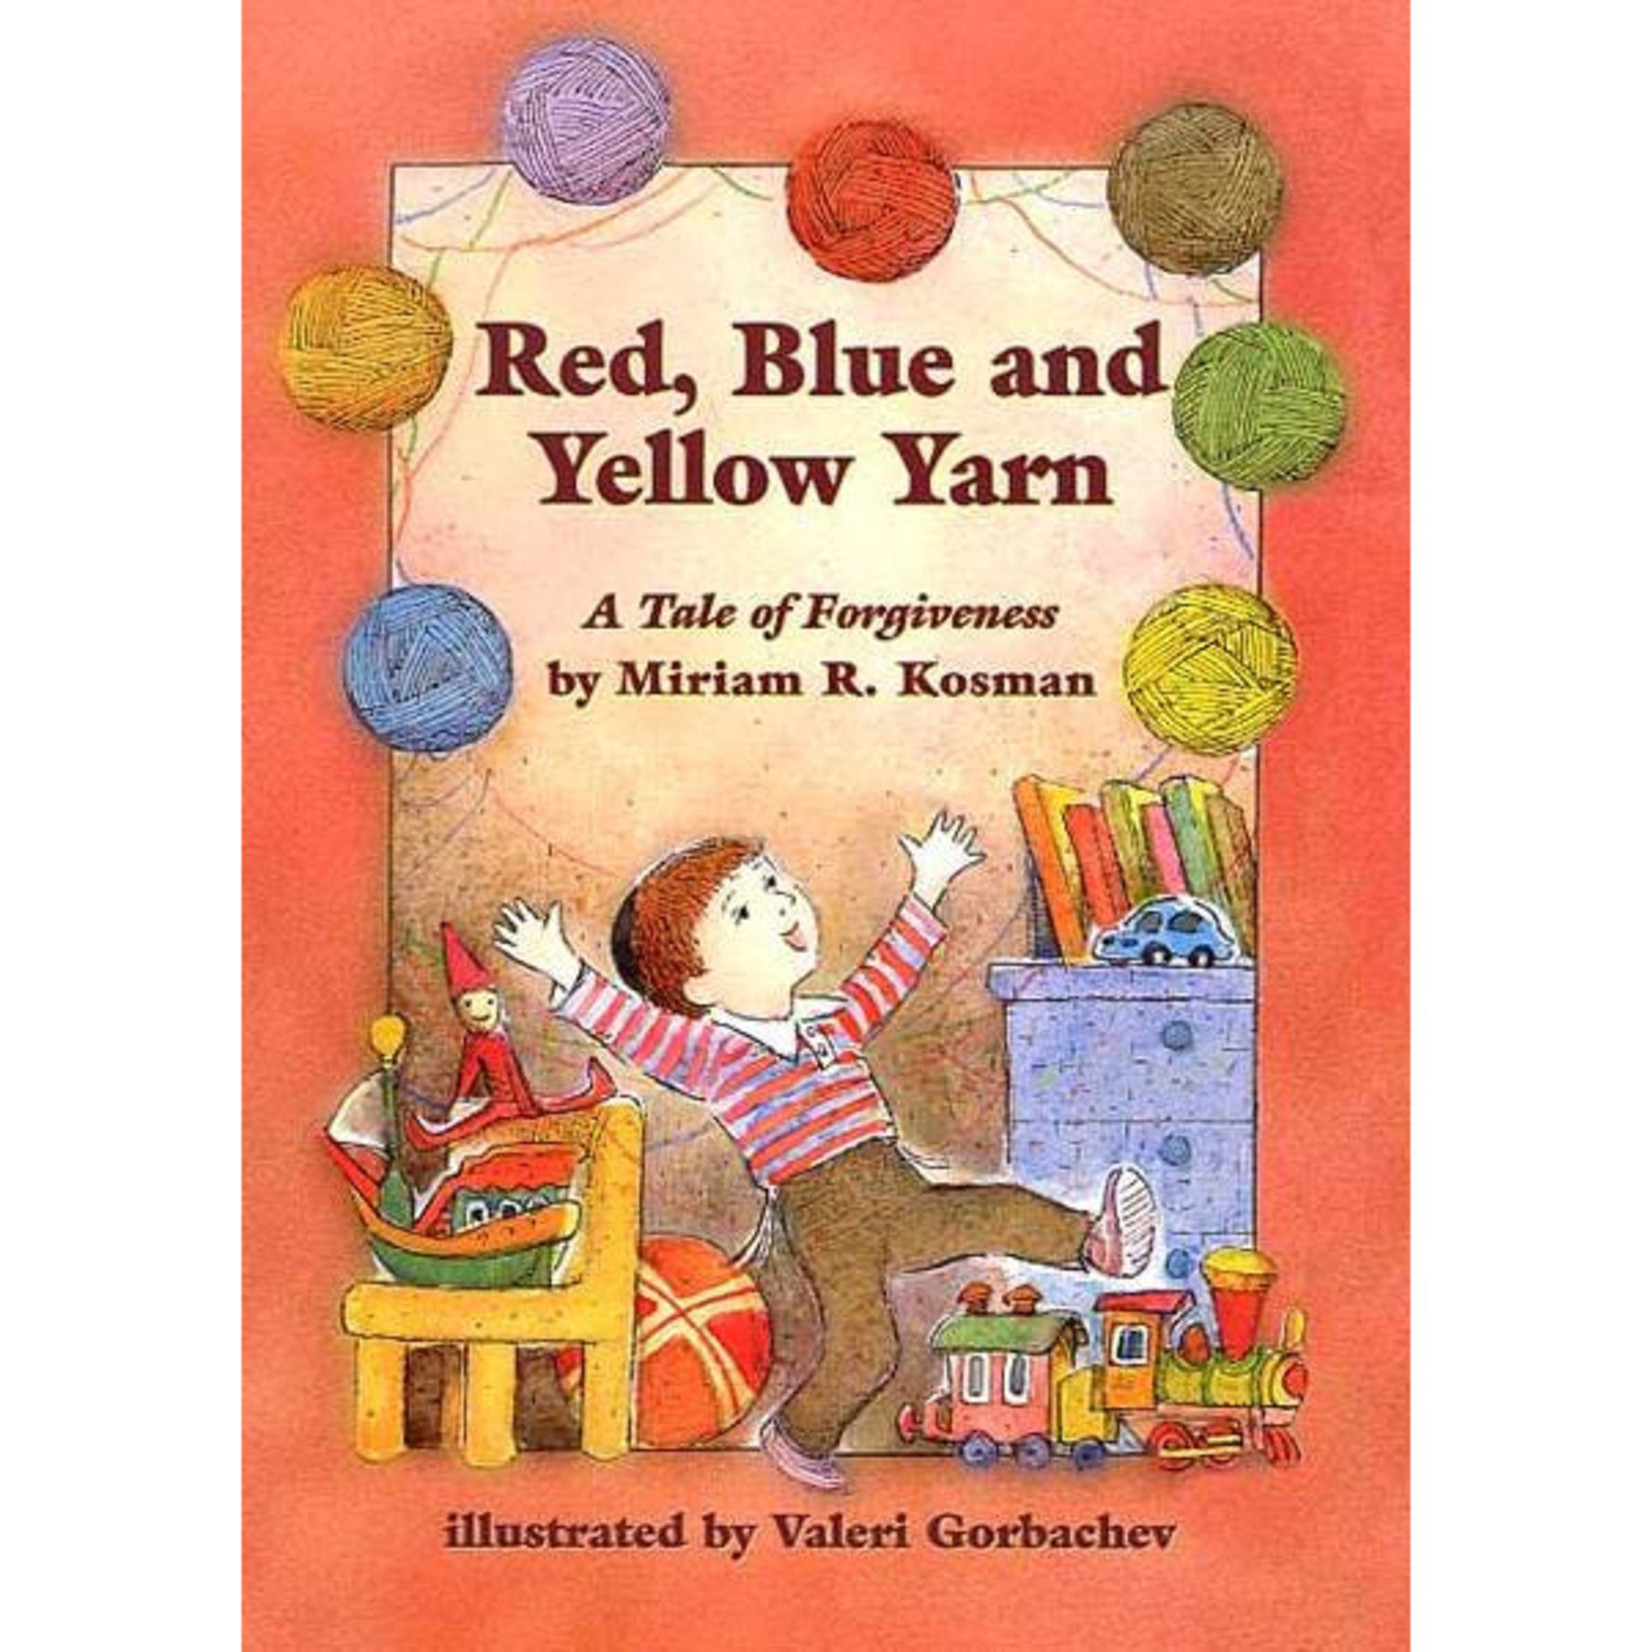 Red, Blue, and Yellow Yarn - A Tale of Forgiveness